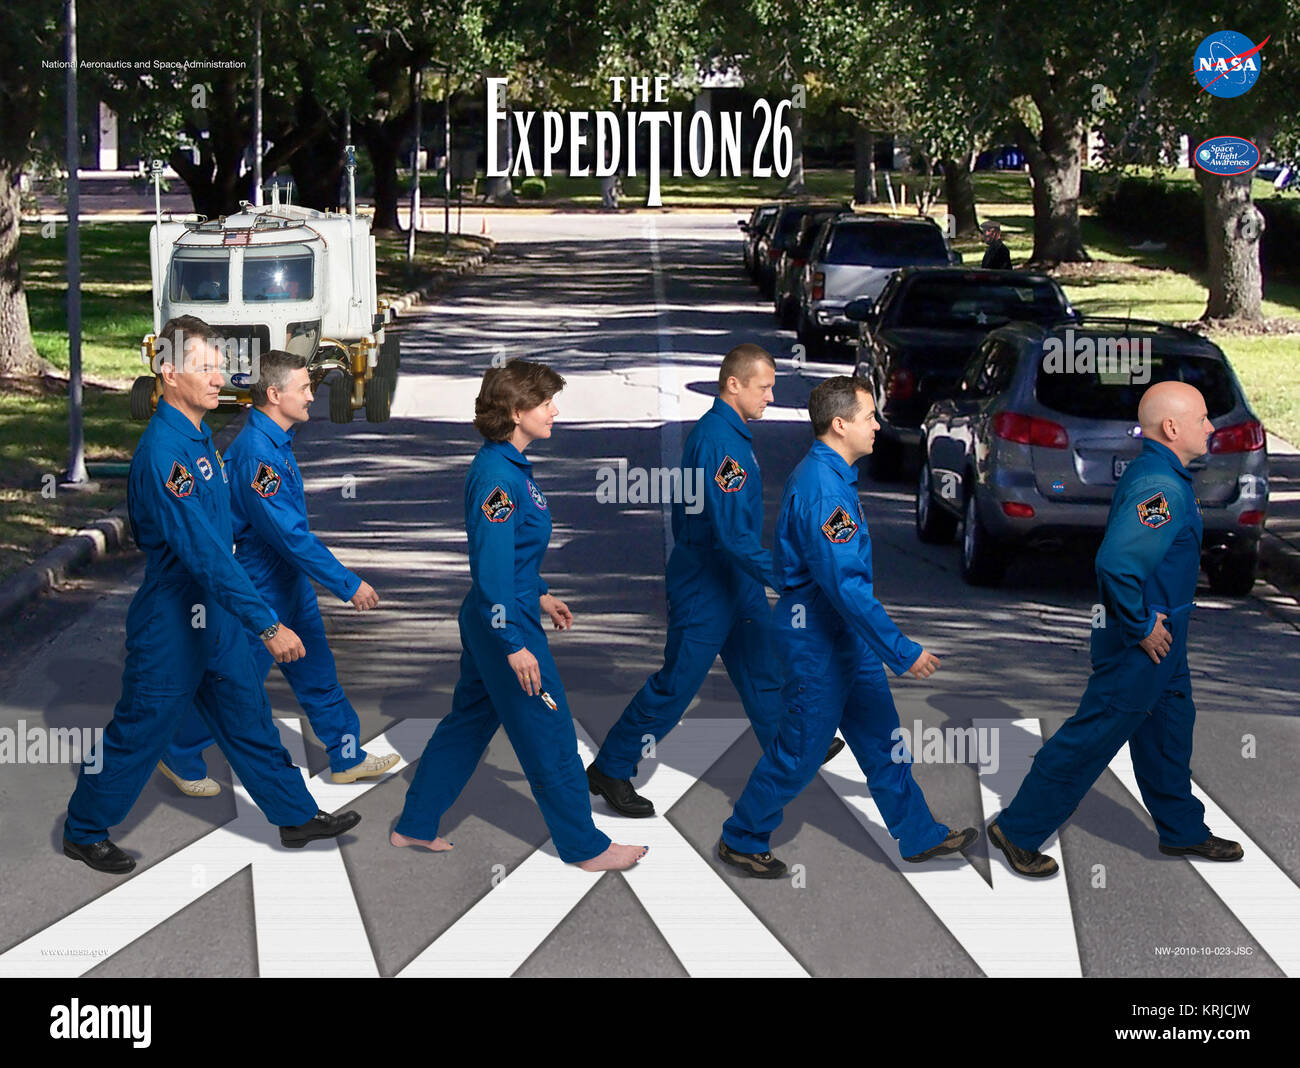 Expedition 26 crew poster Expedition 26 Abbey Road crew poster - Stock Image